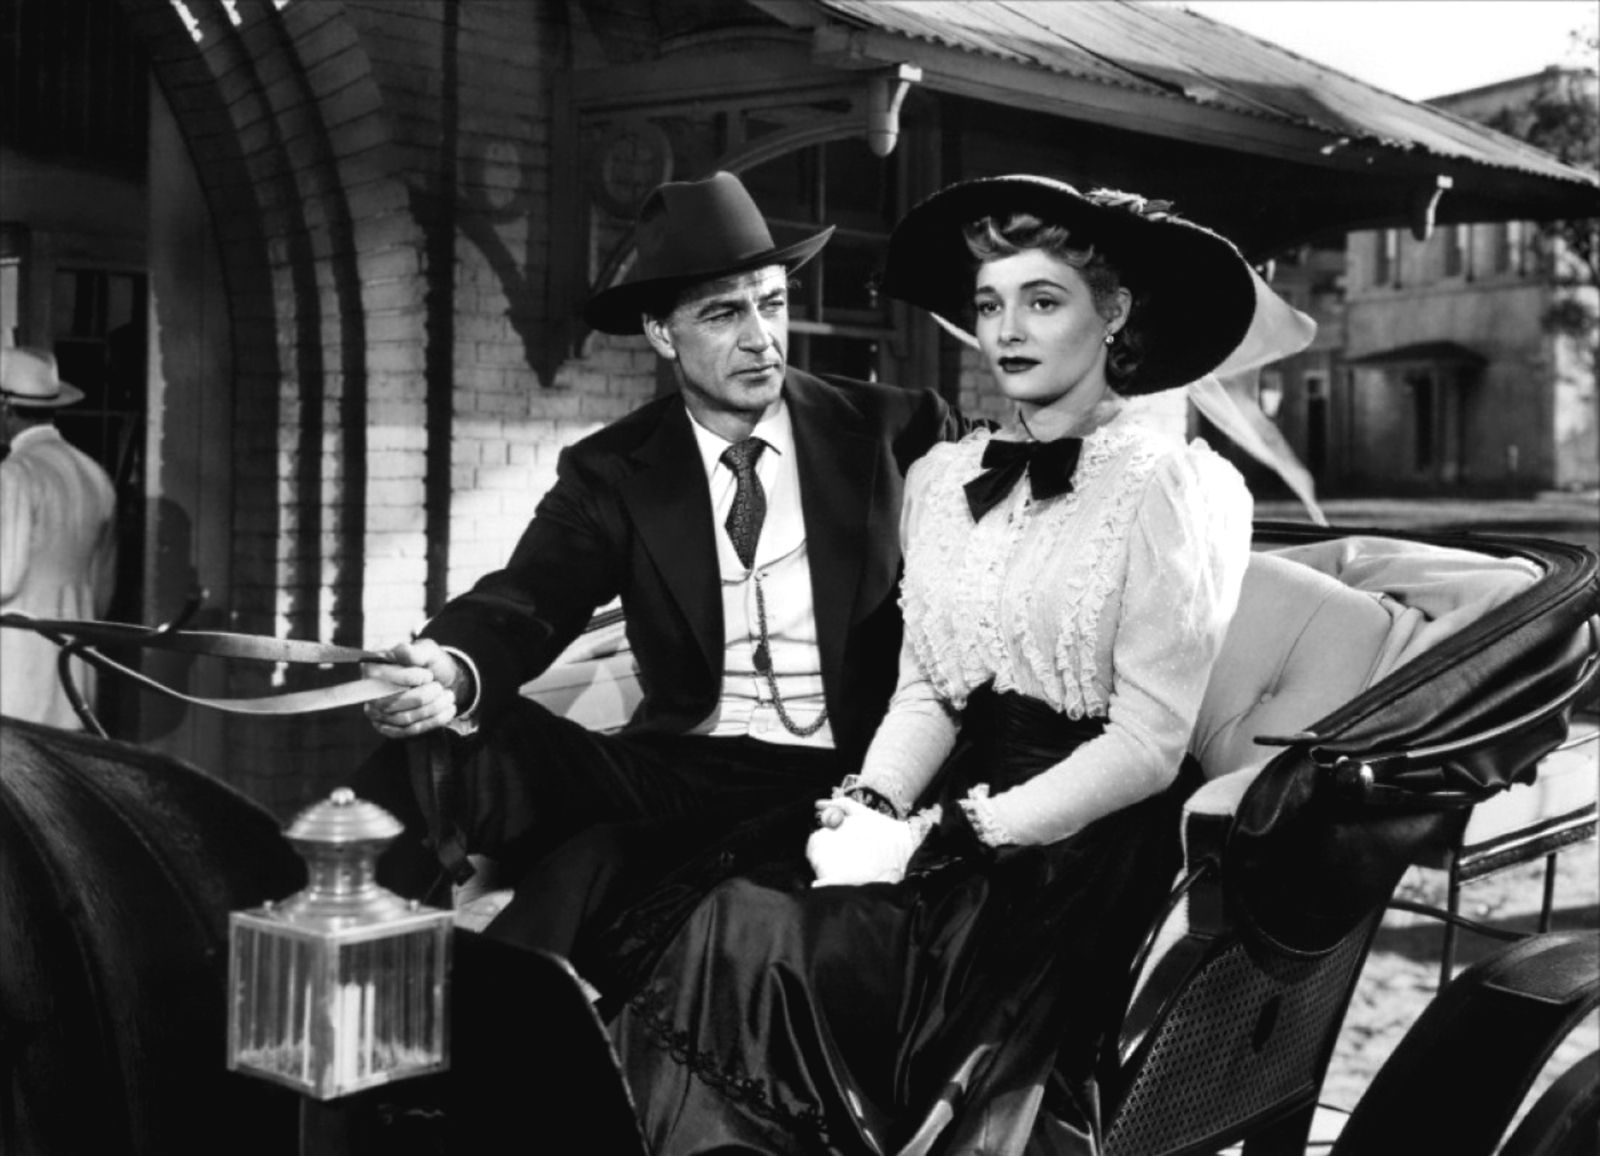 bright leaf is a 1950 film drama directed by michael curtiz and starring gary cooper